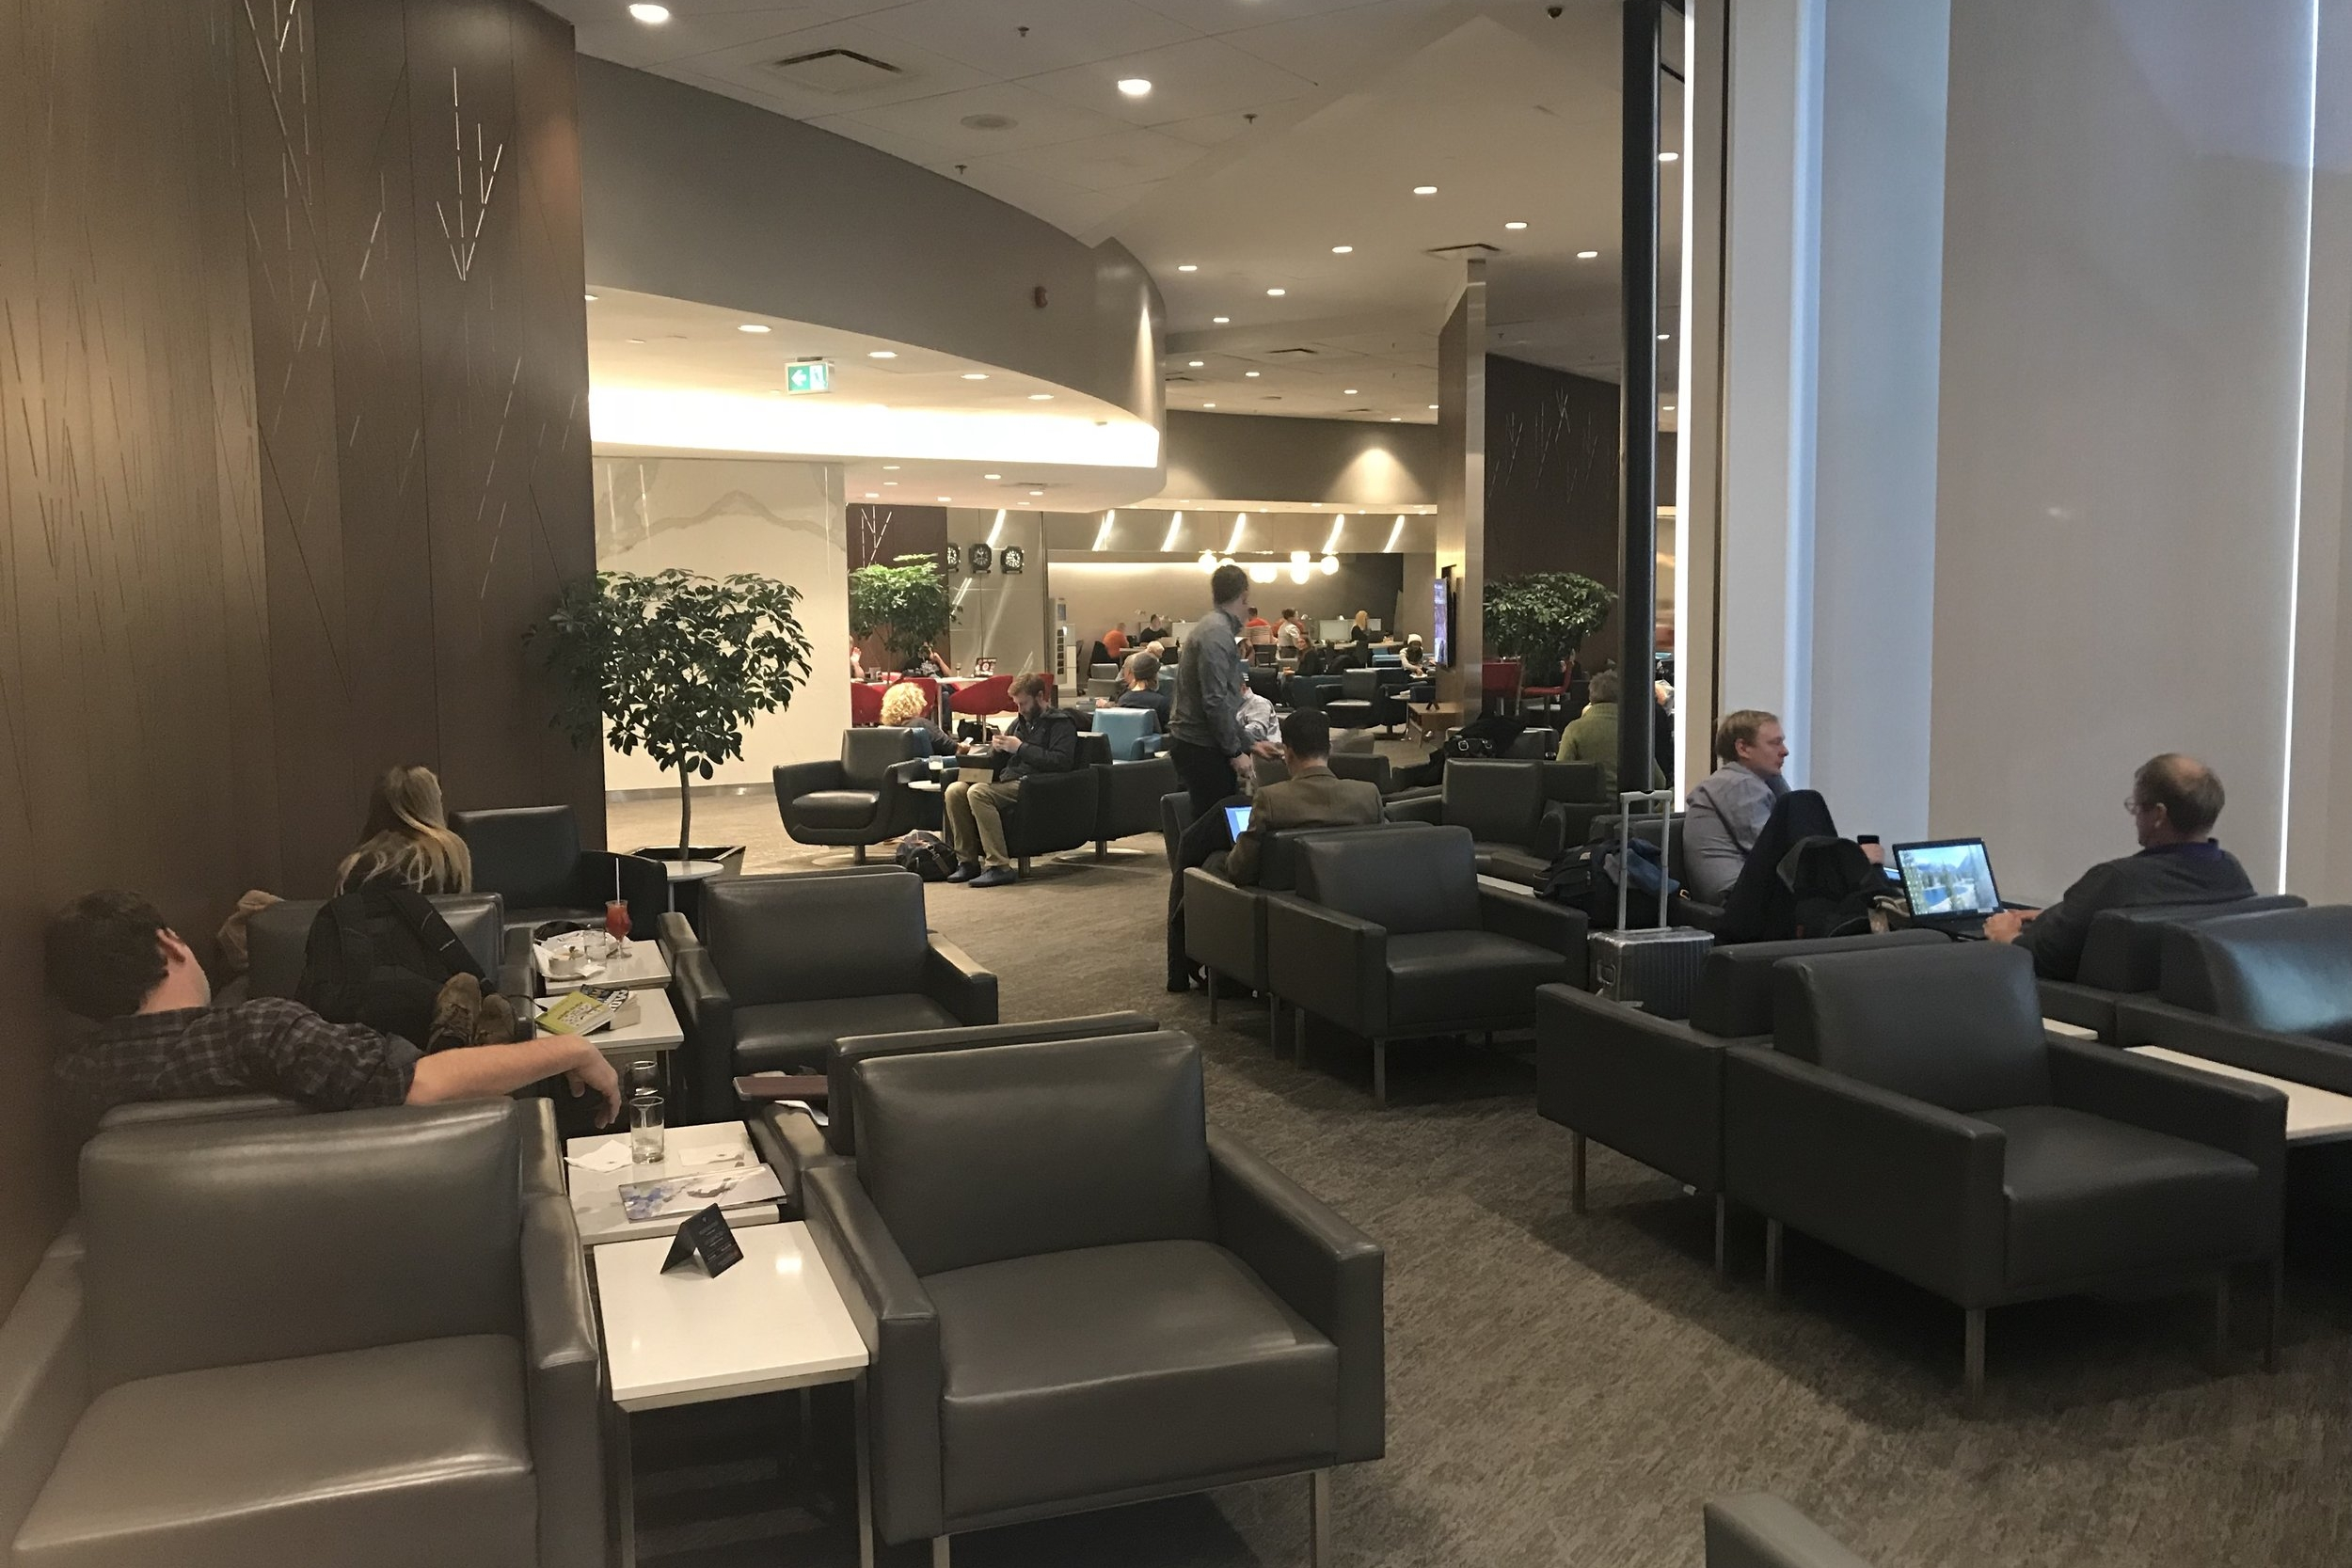 Air Canada Maple Leaf Lounge Calgary (Domestic) – Seating area